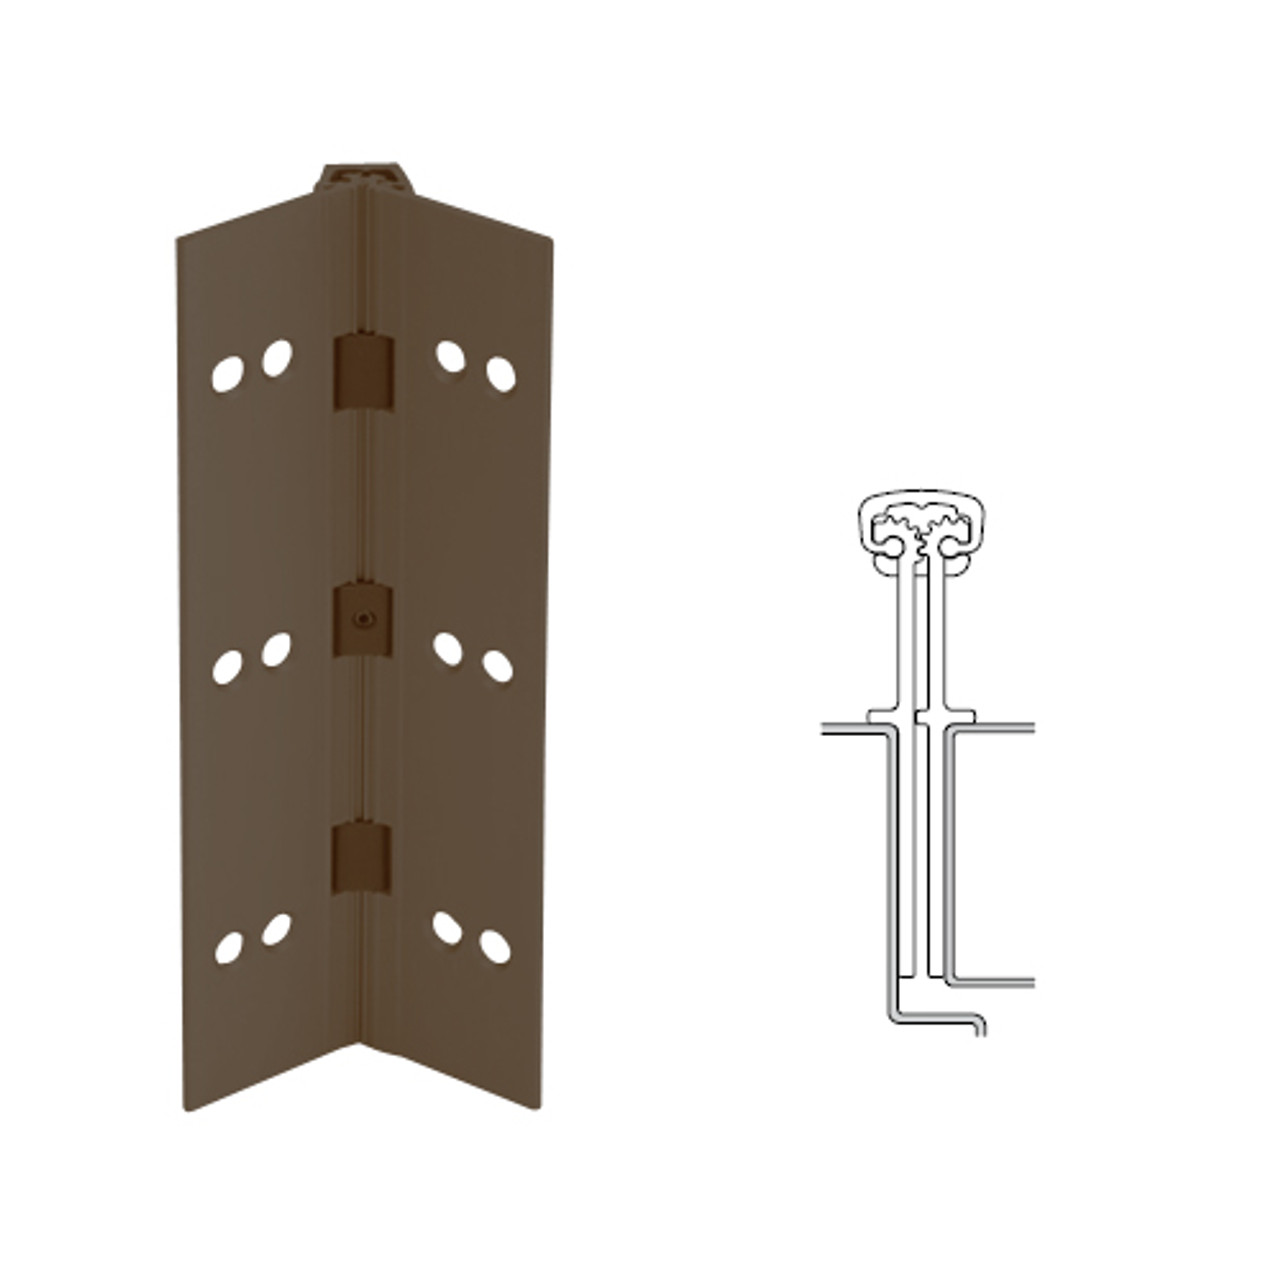 040XY-313AN-83 IVES Full Mortise Continuous Geared Hinges in Dark Bronze Anodized